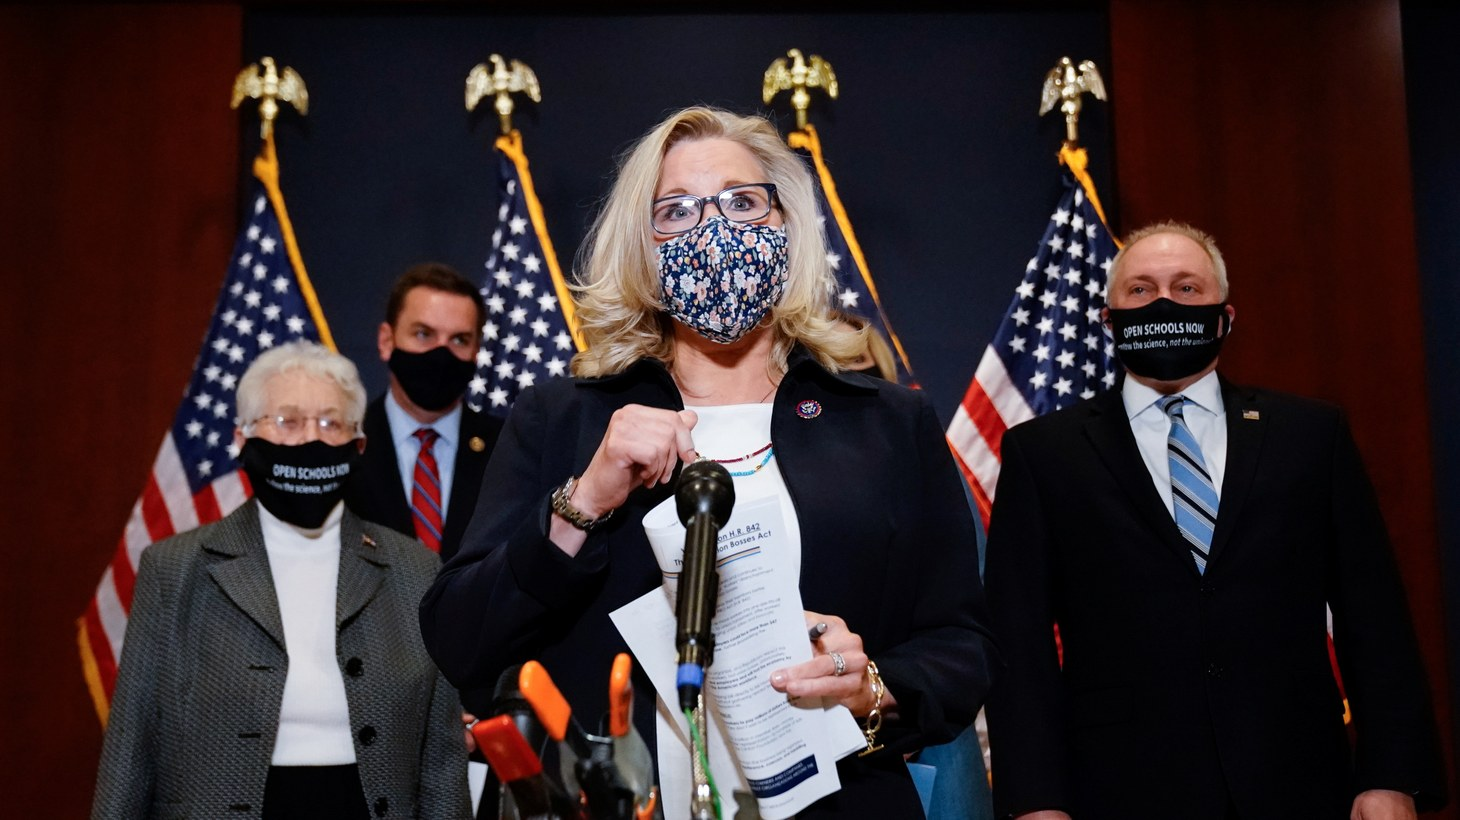 Liz Cheney (R-WY) participates in a news conference with House Republican leadership in the U.S. Capitol in Washington, U.S., March 9, 2021.